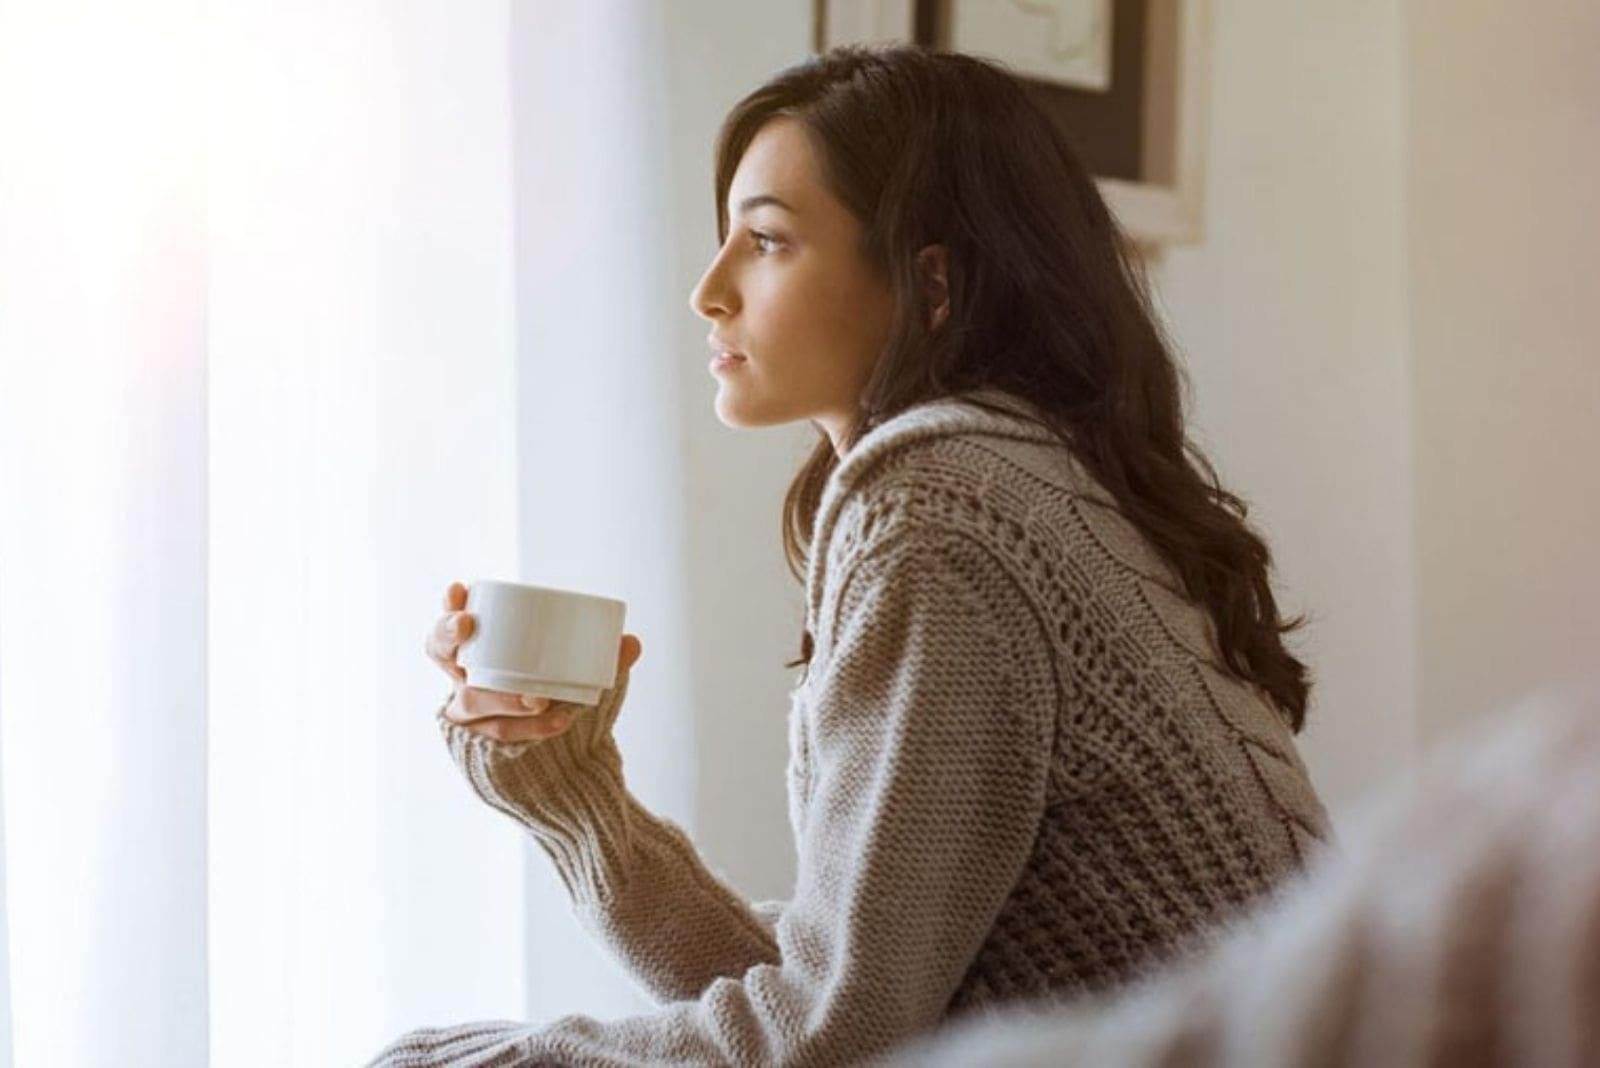 sideview of a young woman drinking coffee inside home looking out near the window pensively